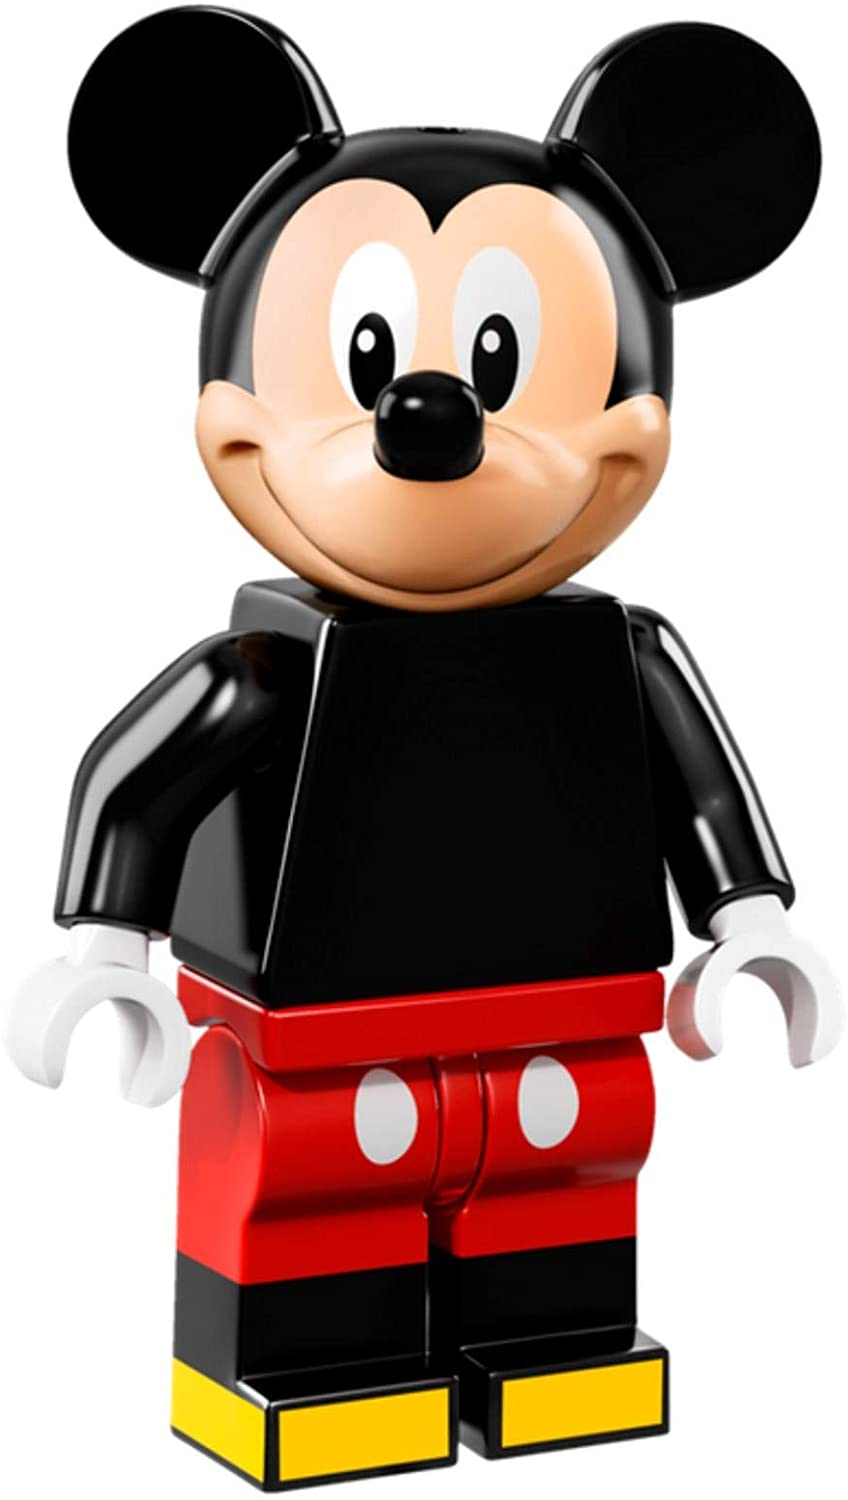 LEGO DISNEY Mickey Mouse MINIFIGURE 71012